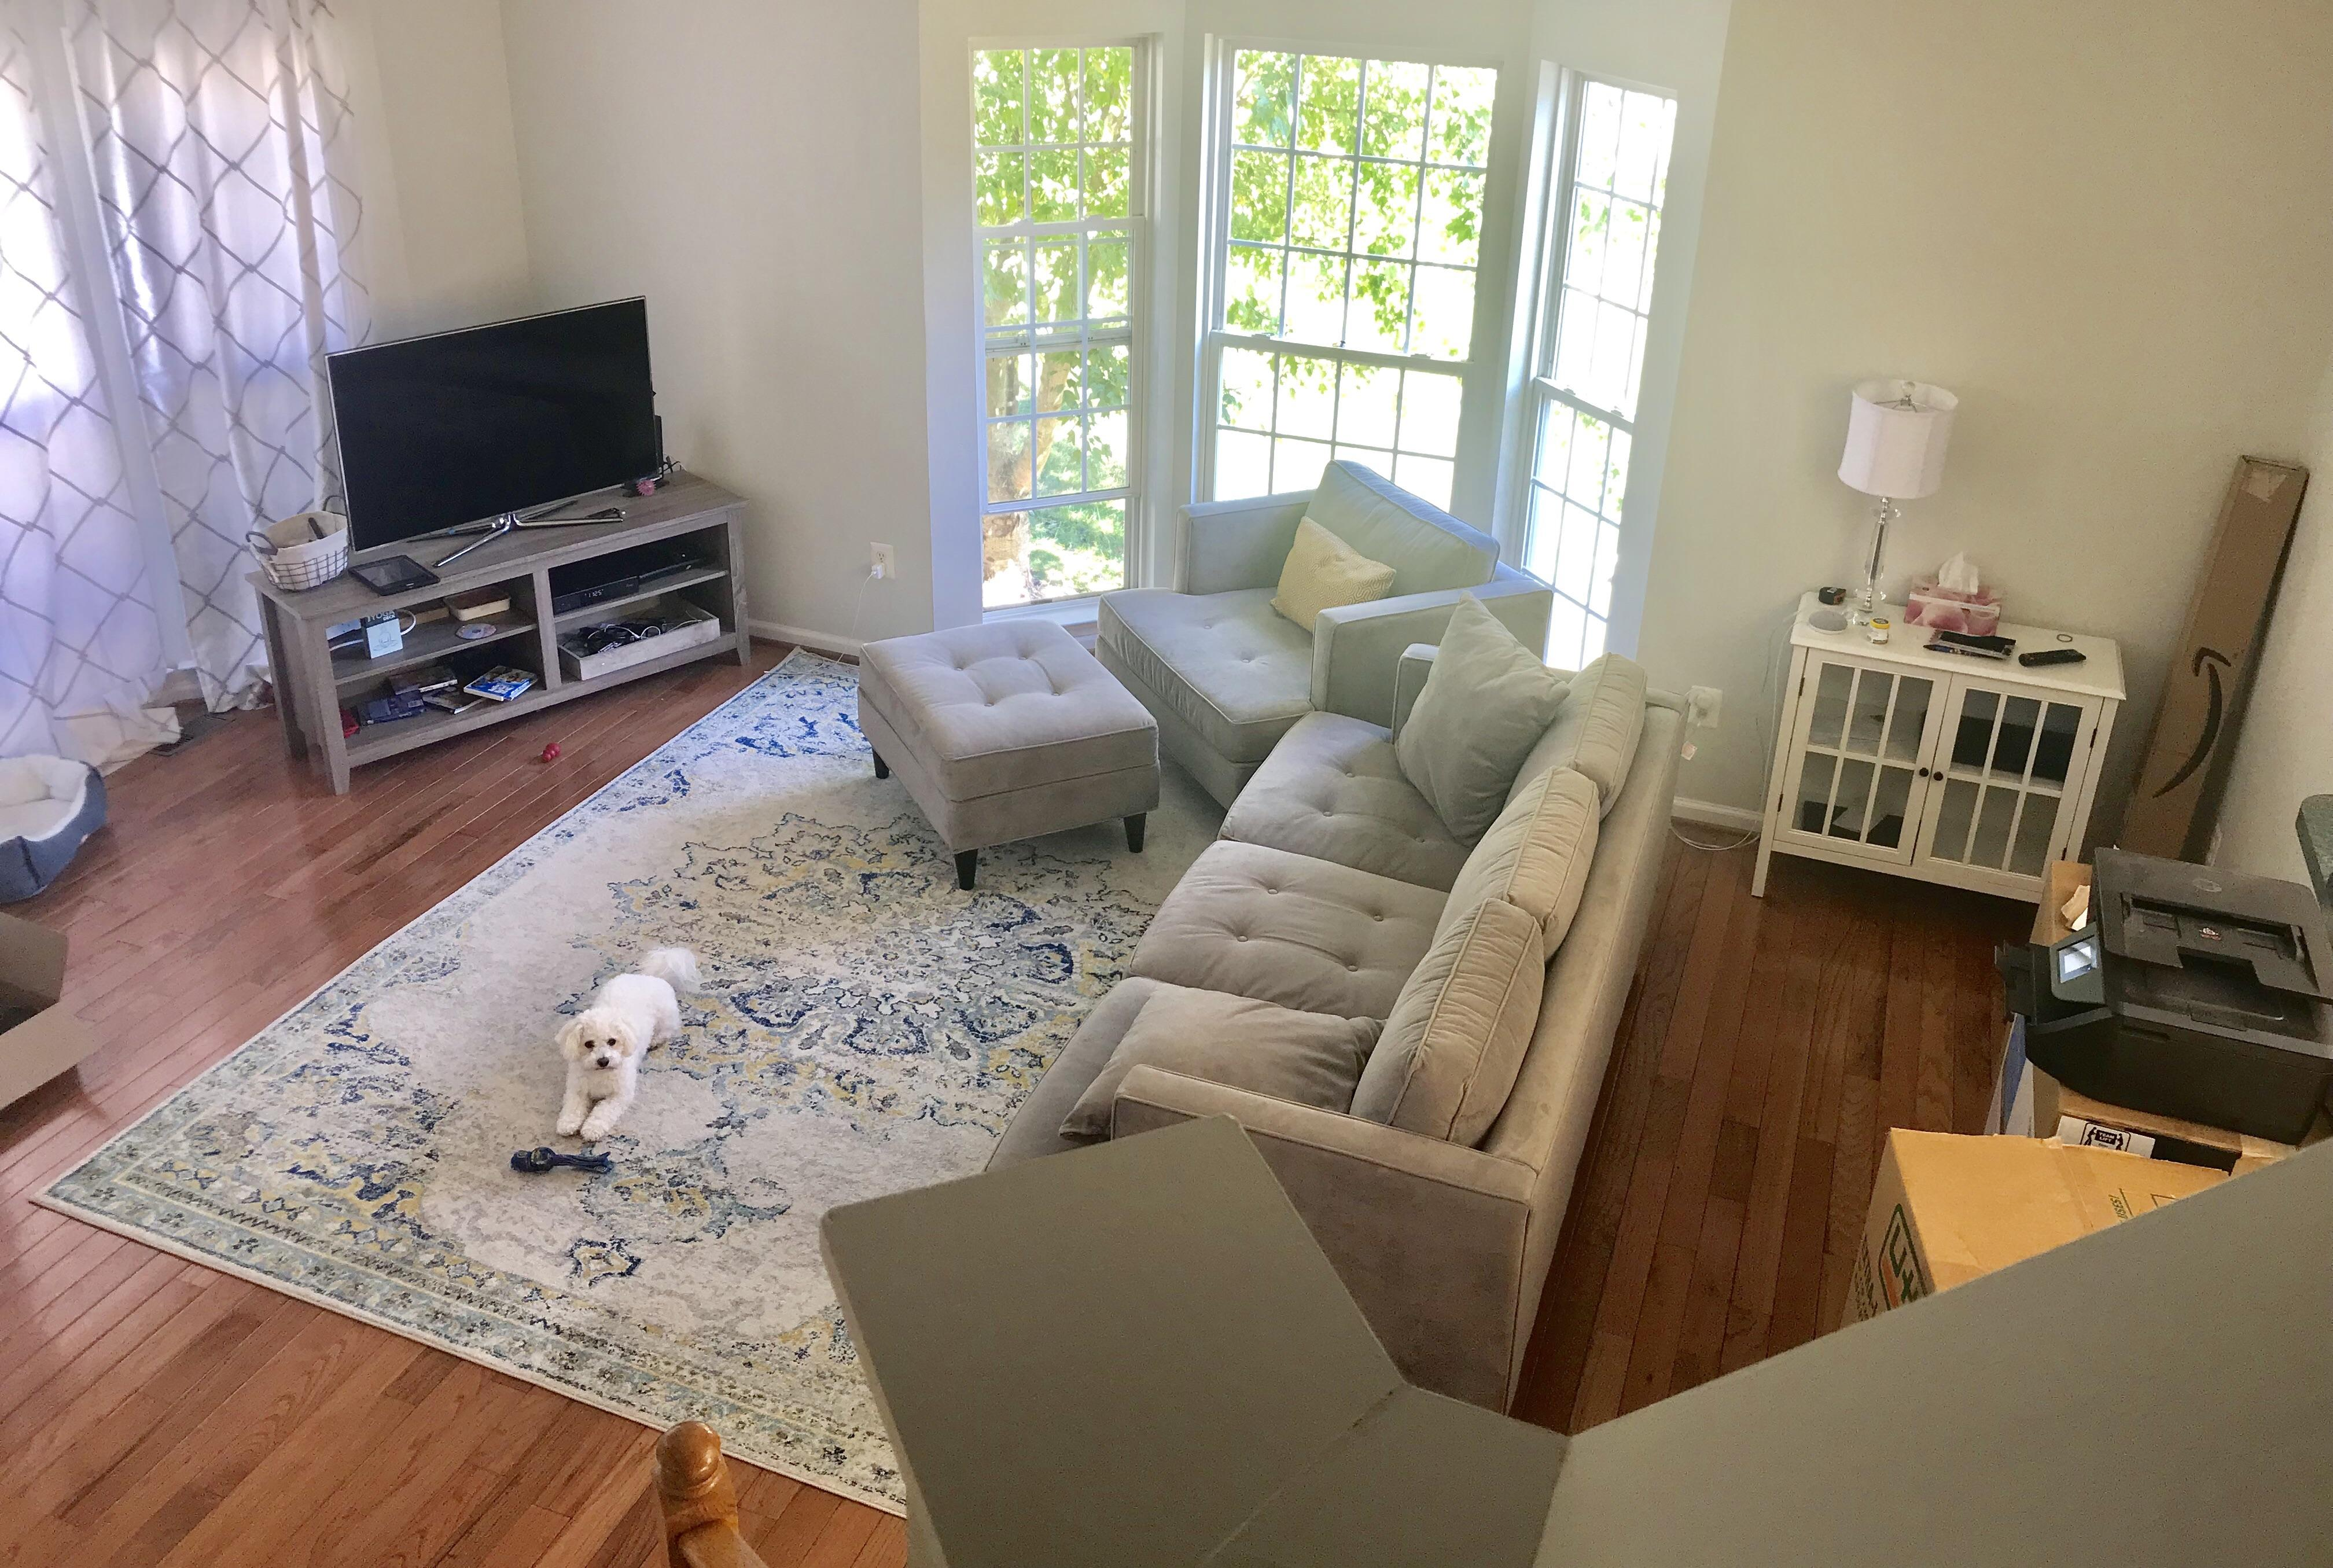 Sofa Couch Reddit Need Help With Furniture Rug Placement Bay Window On The Left And